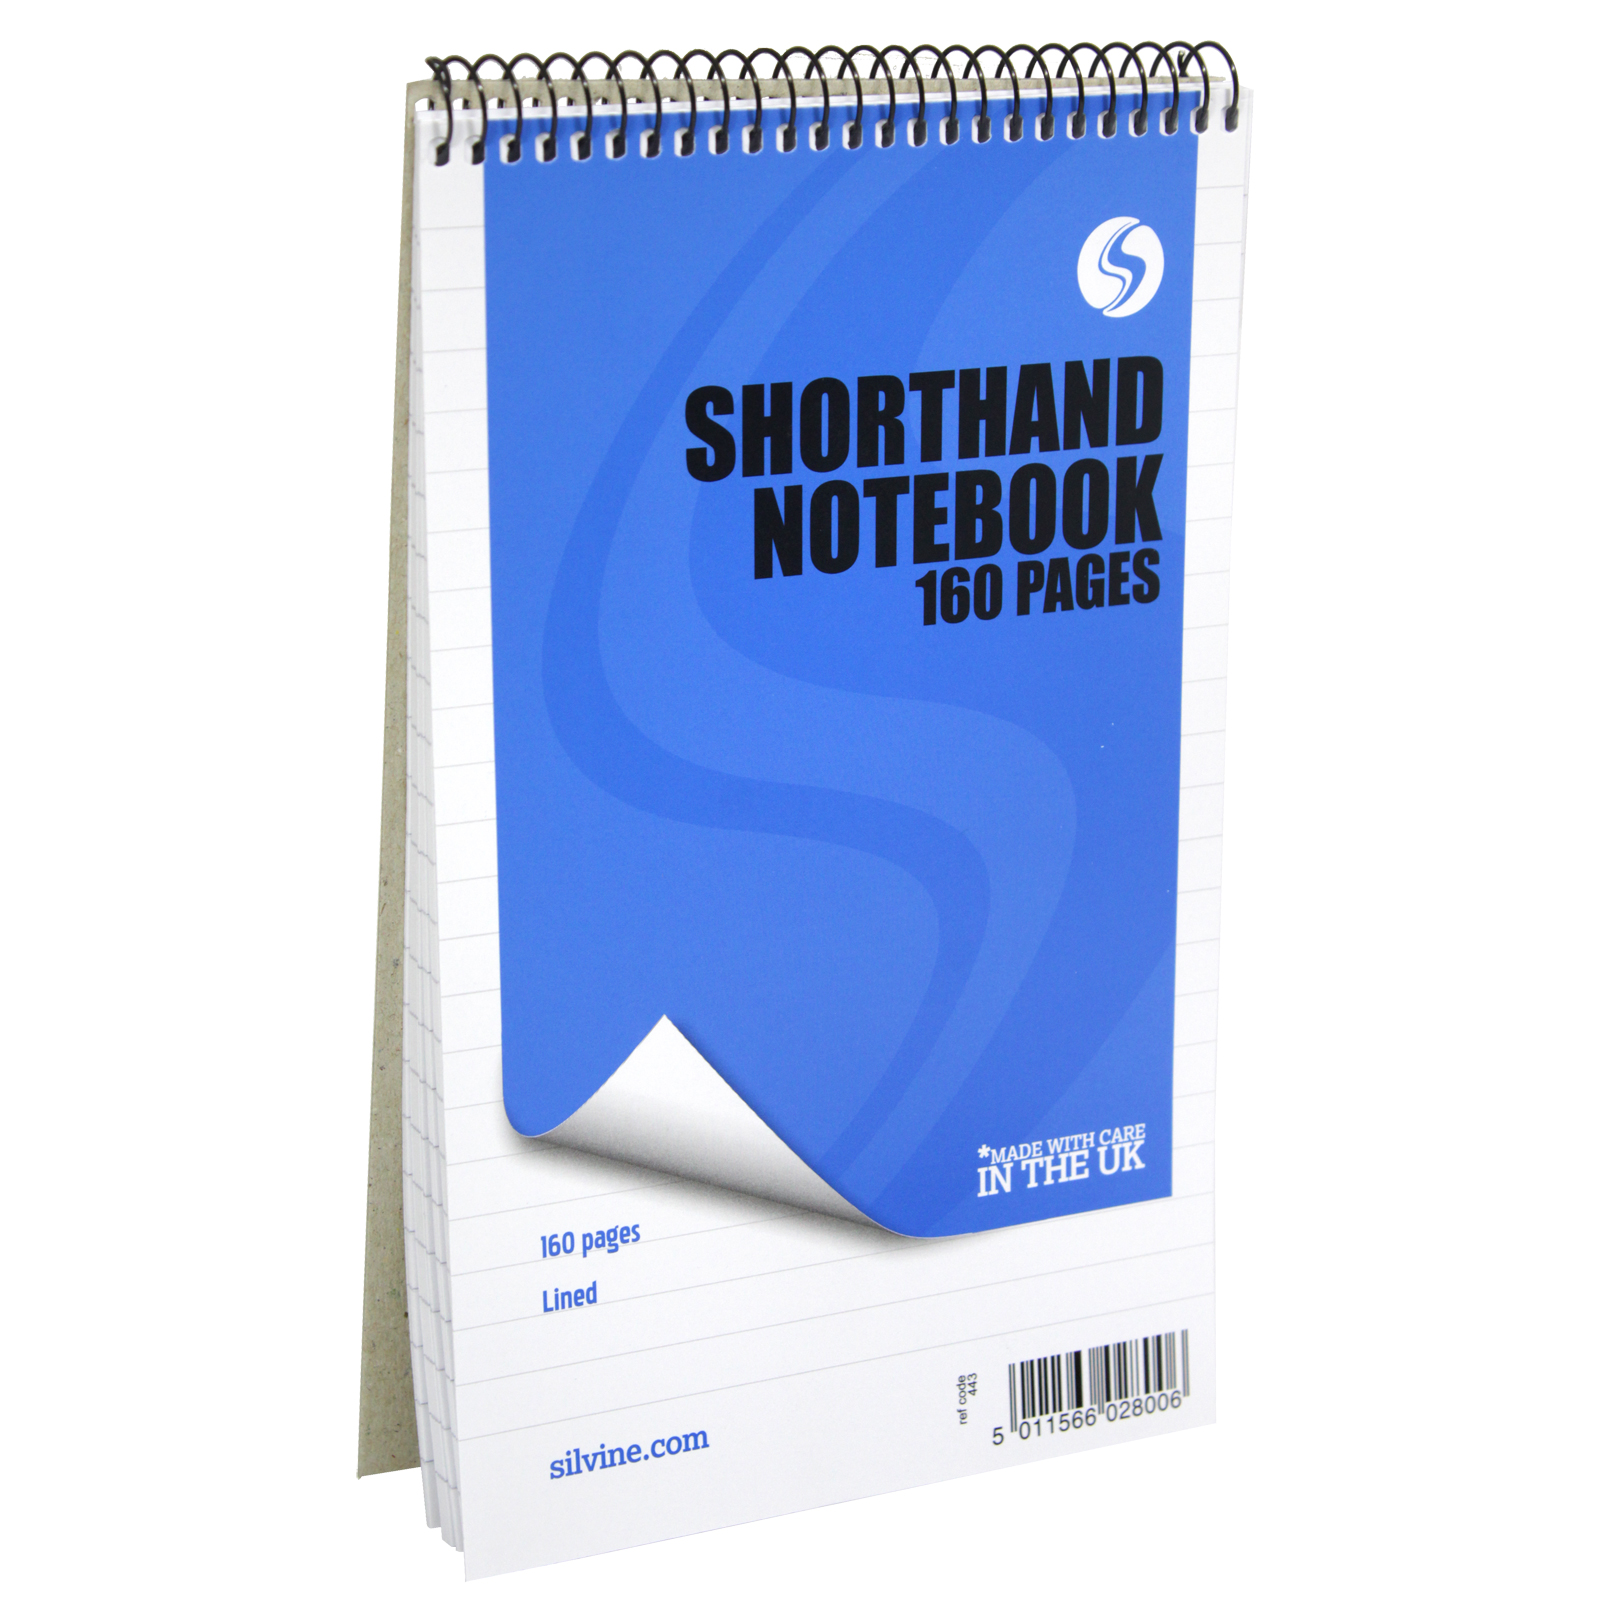 SHORTHAND NOTEBOOK 160P RSP 99P X12